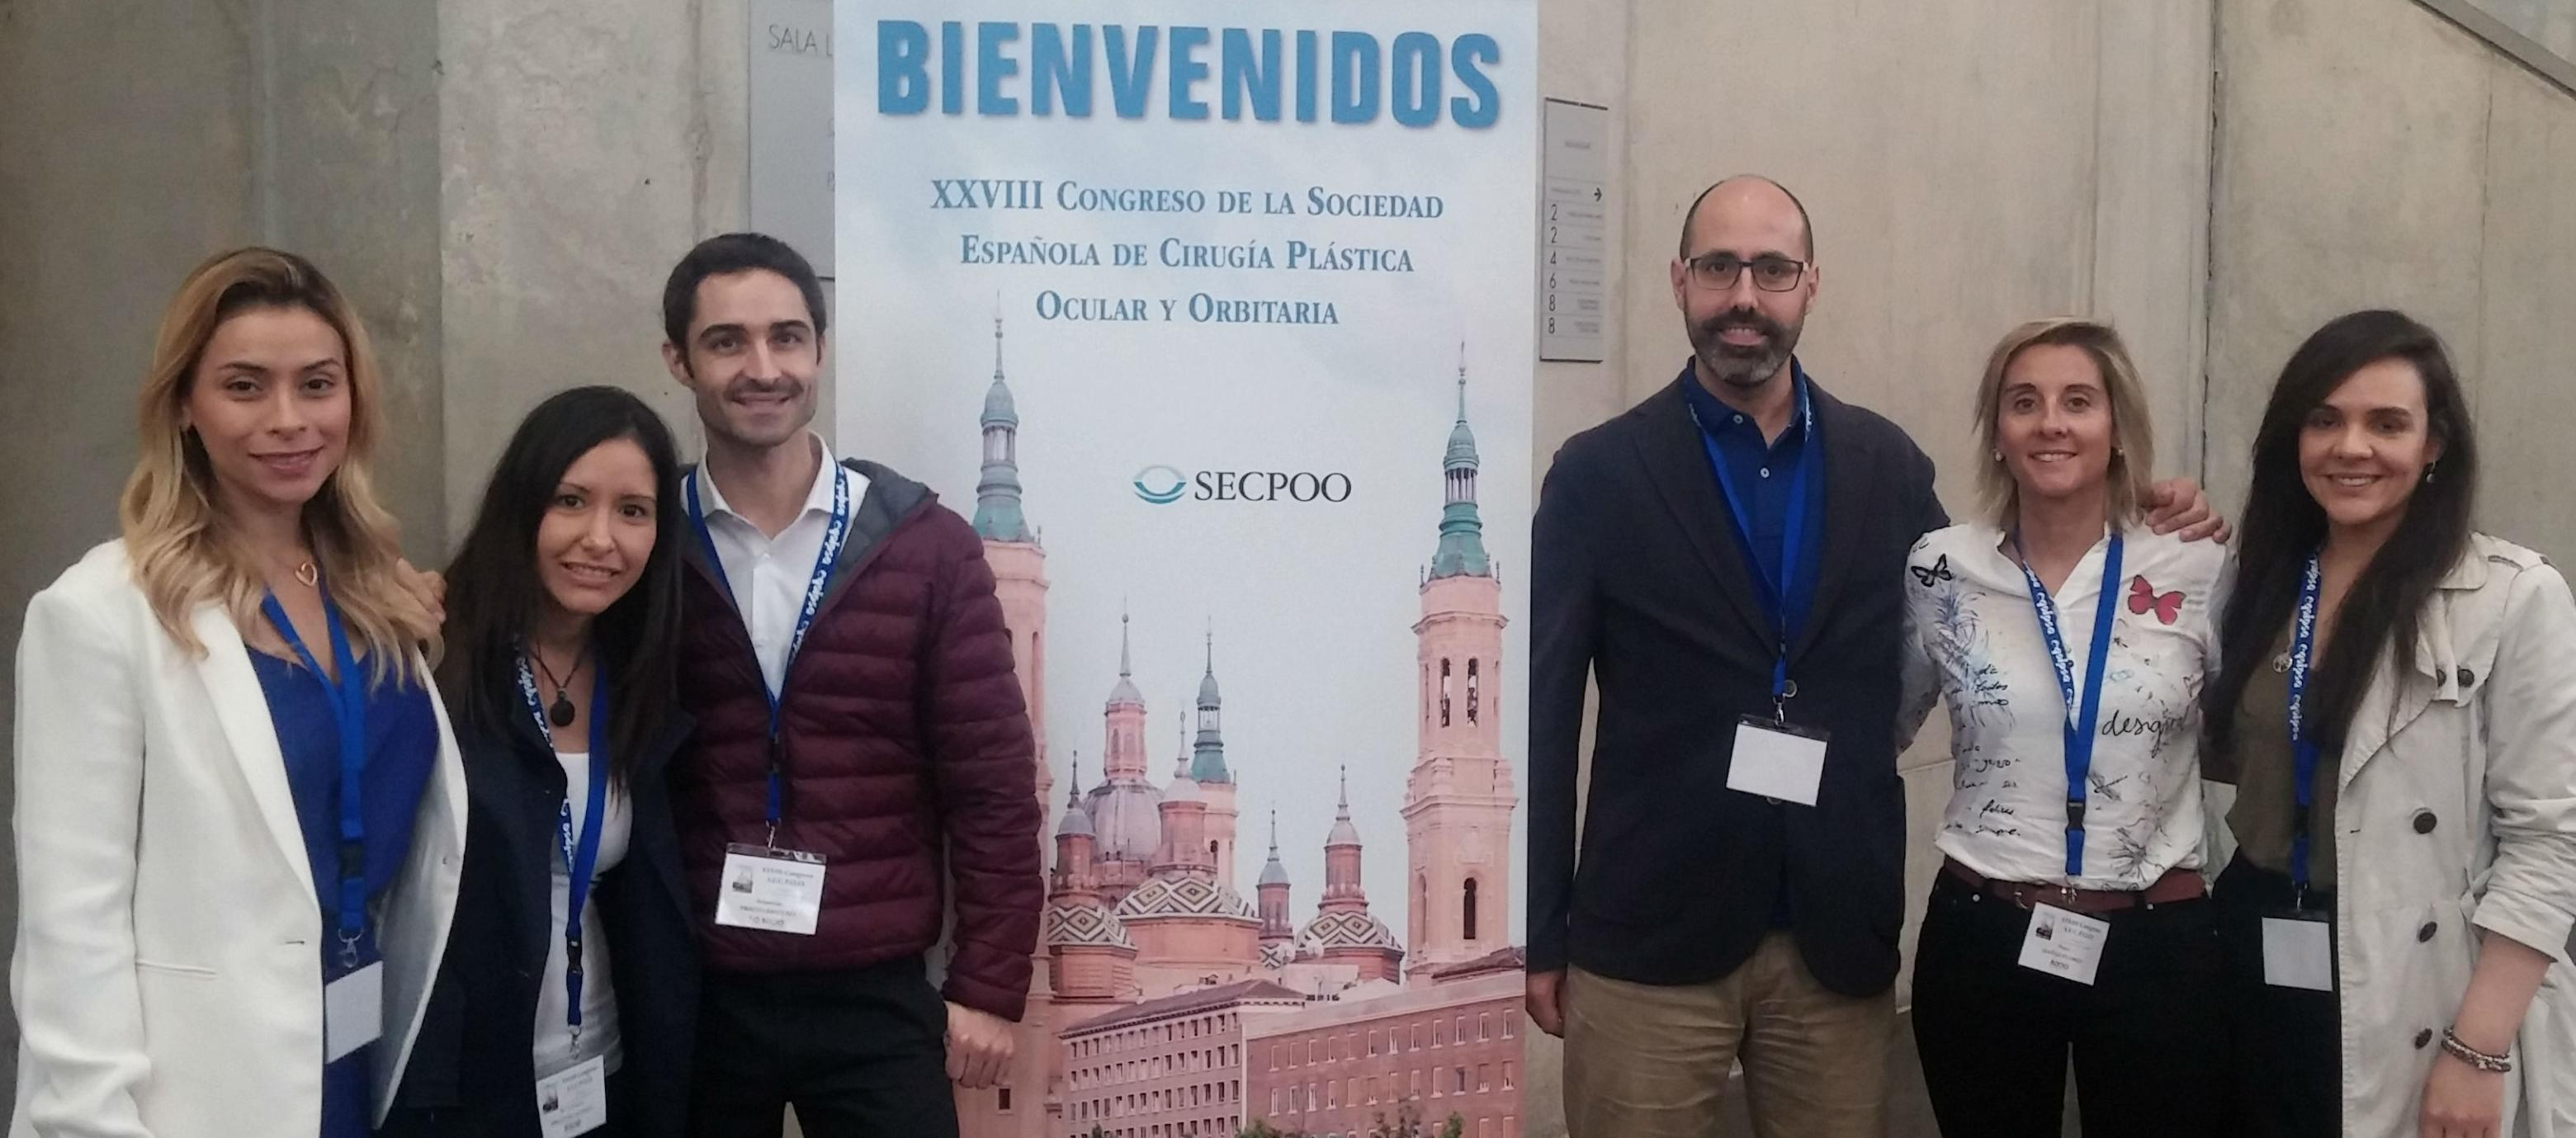 ICR Oculoplastics Department Team in the 28th Congress of the Spanish Society of Ocular and Orbital Plastic Surgery